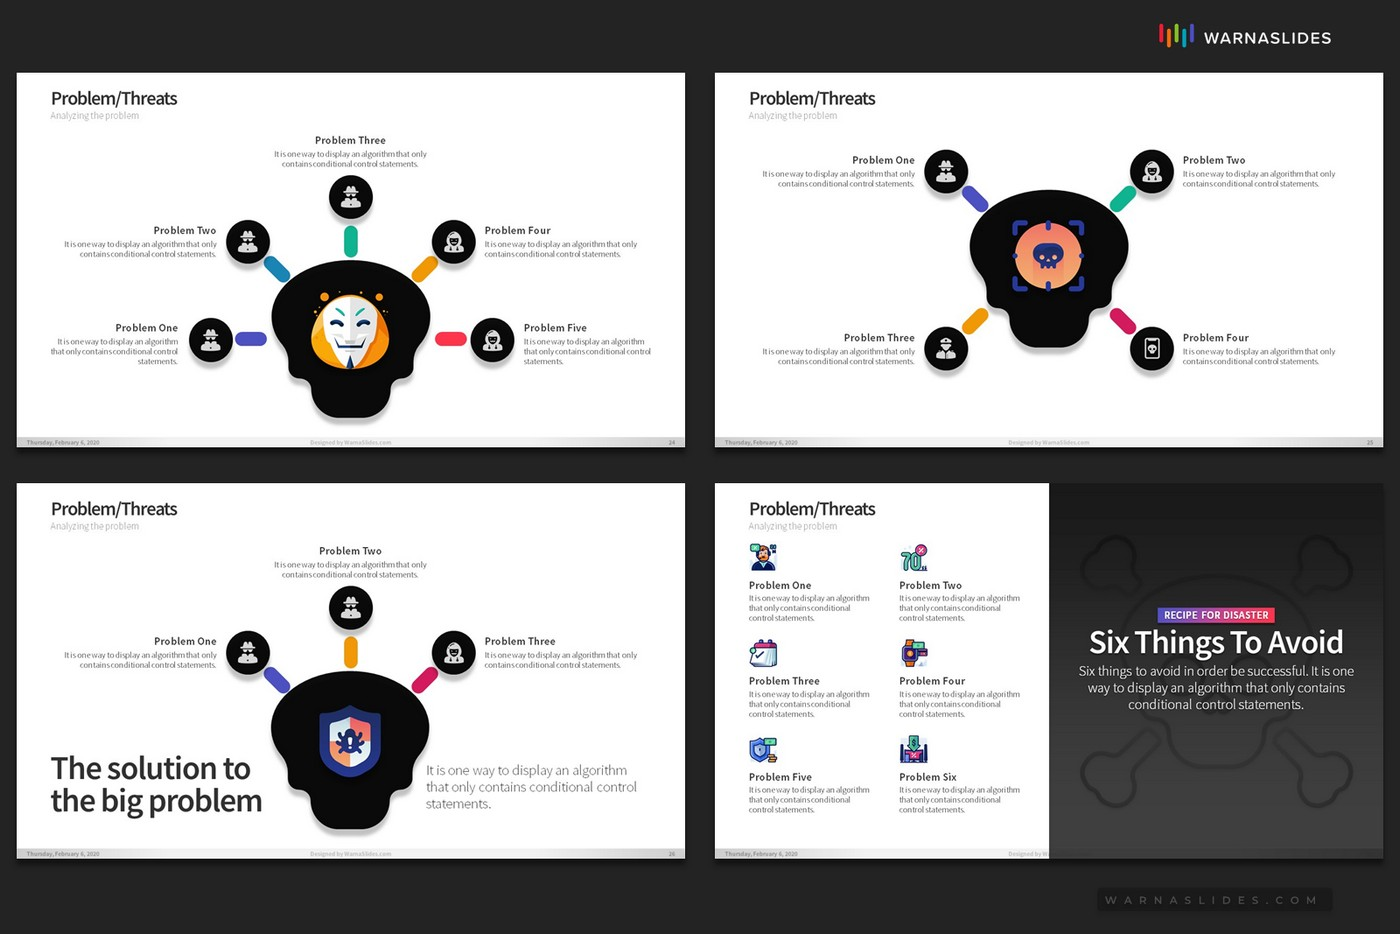 Problem-Threats-Risk-Management-Weaknesses-Services-Brainstorm-PowerPoint-Template-2020-for-Business-Pitch-Deck-Professional-Creative-Presentation-by-Warna-Slides-011